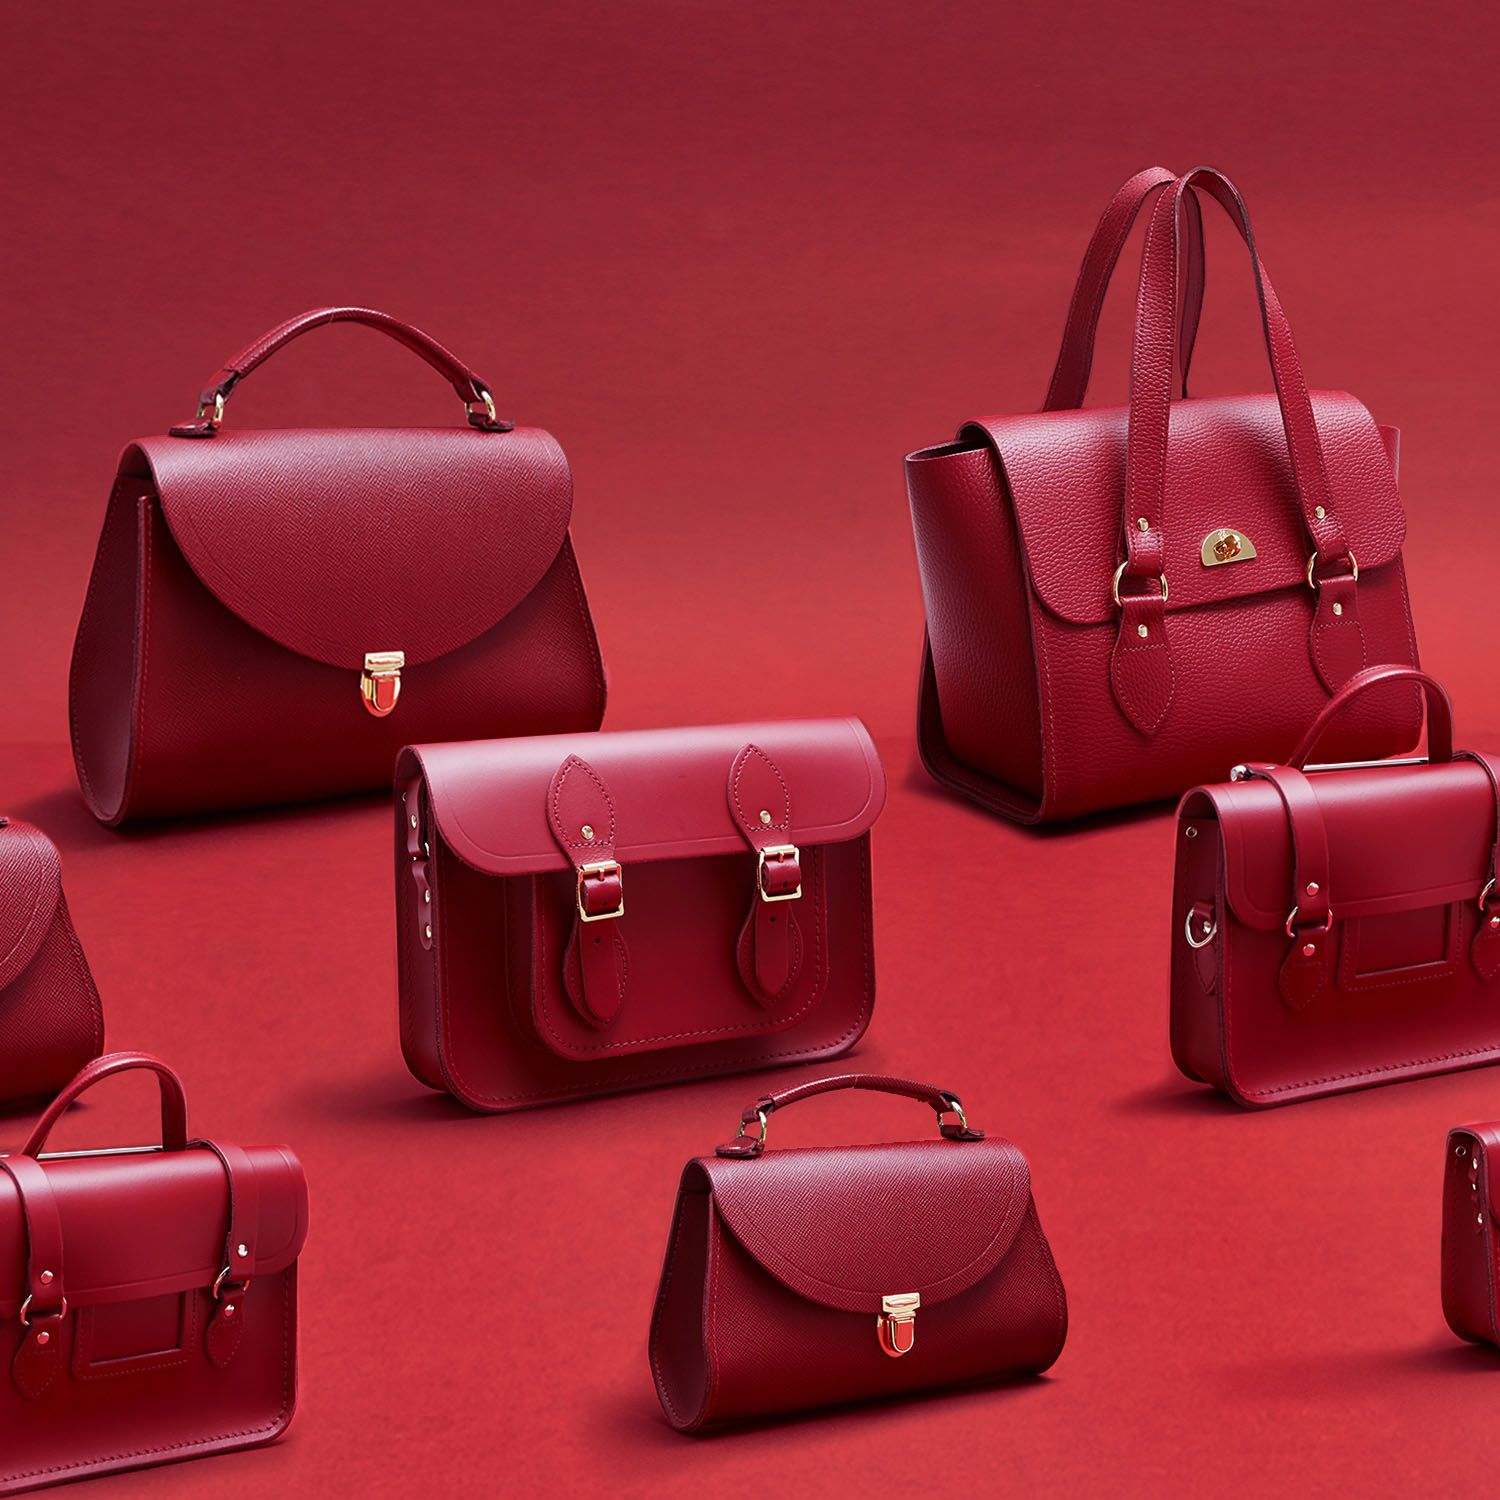 Rhubarb Red Collection | The Cambridge Satchel Company